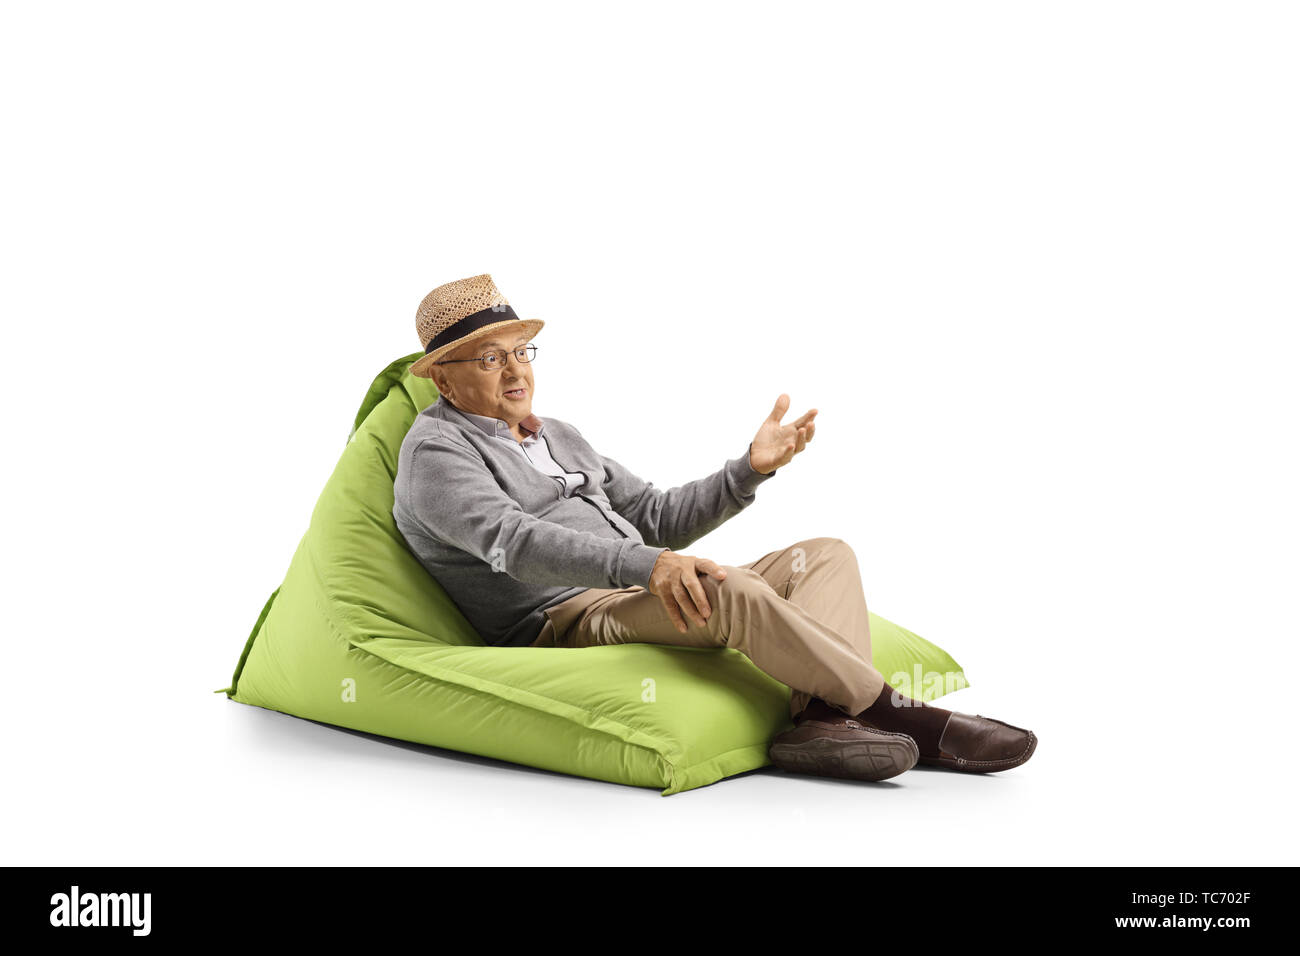 Senior man with face expression resting on a bean-bag armchair and gesturing with hand isolated on white background - Stock Image